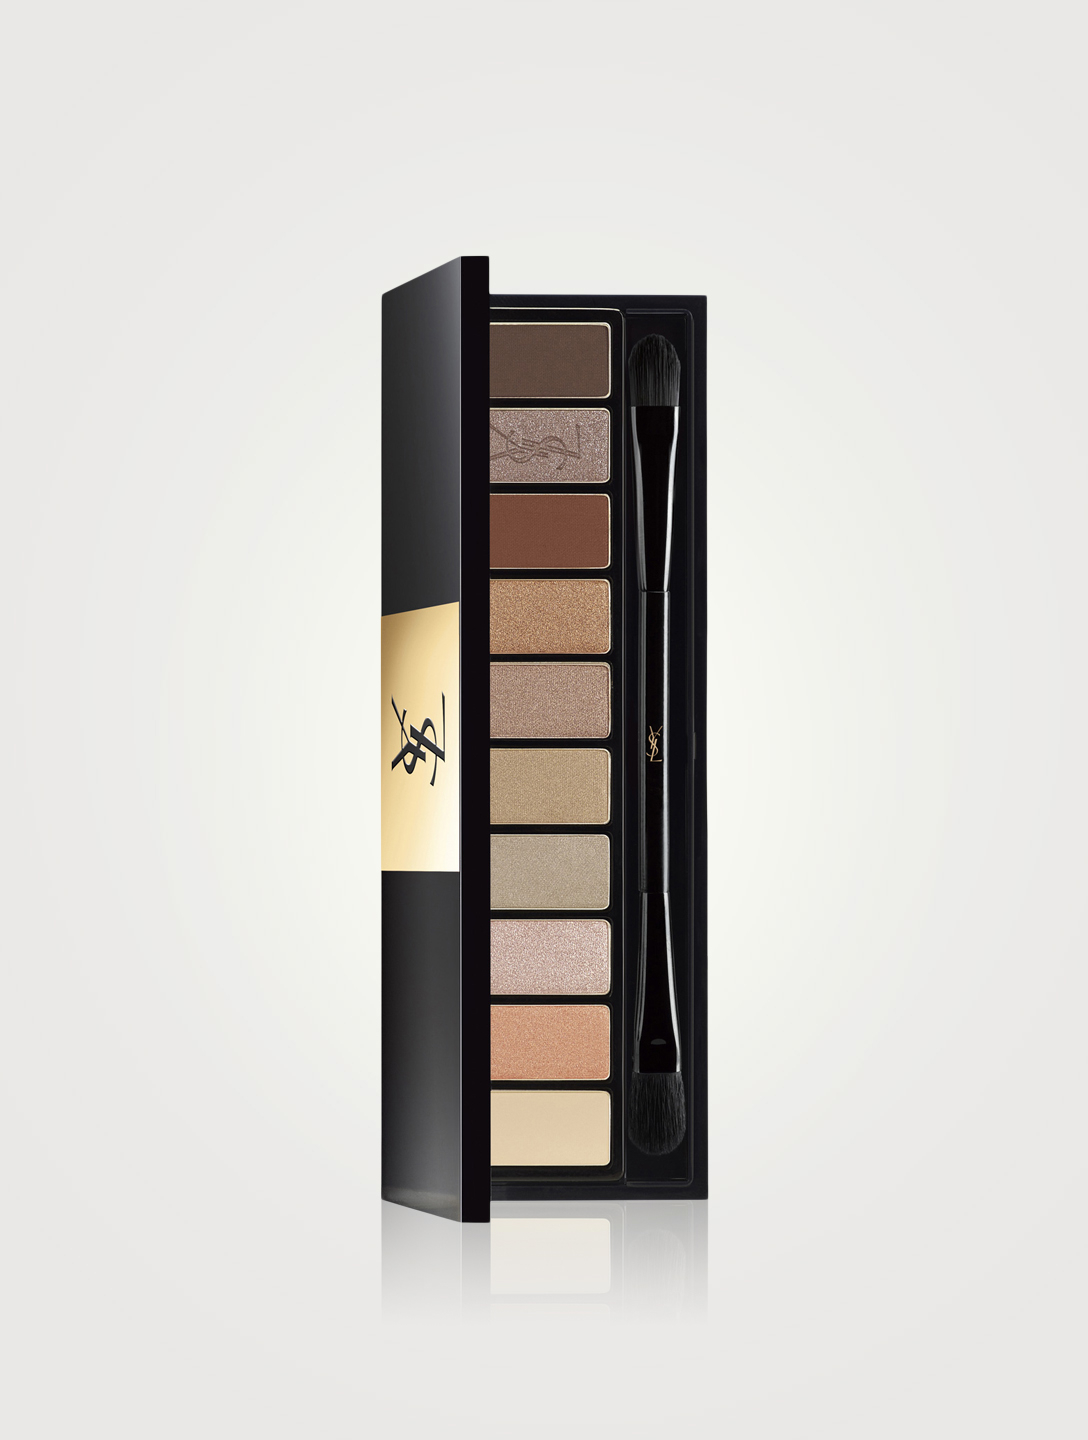 YVES SAINT LAURENT Couture Variation Eyeshadow Palette Beauty Brown